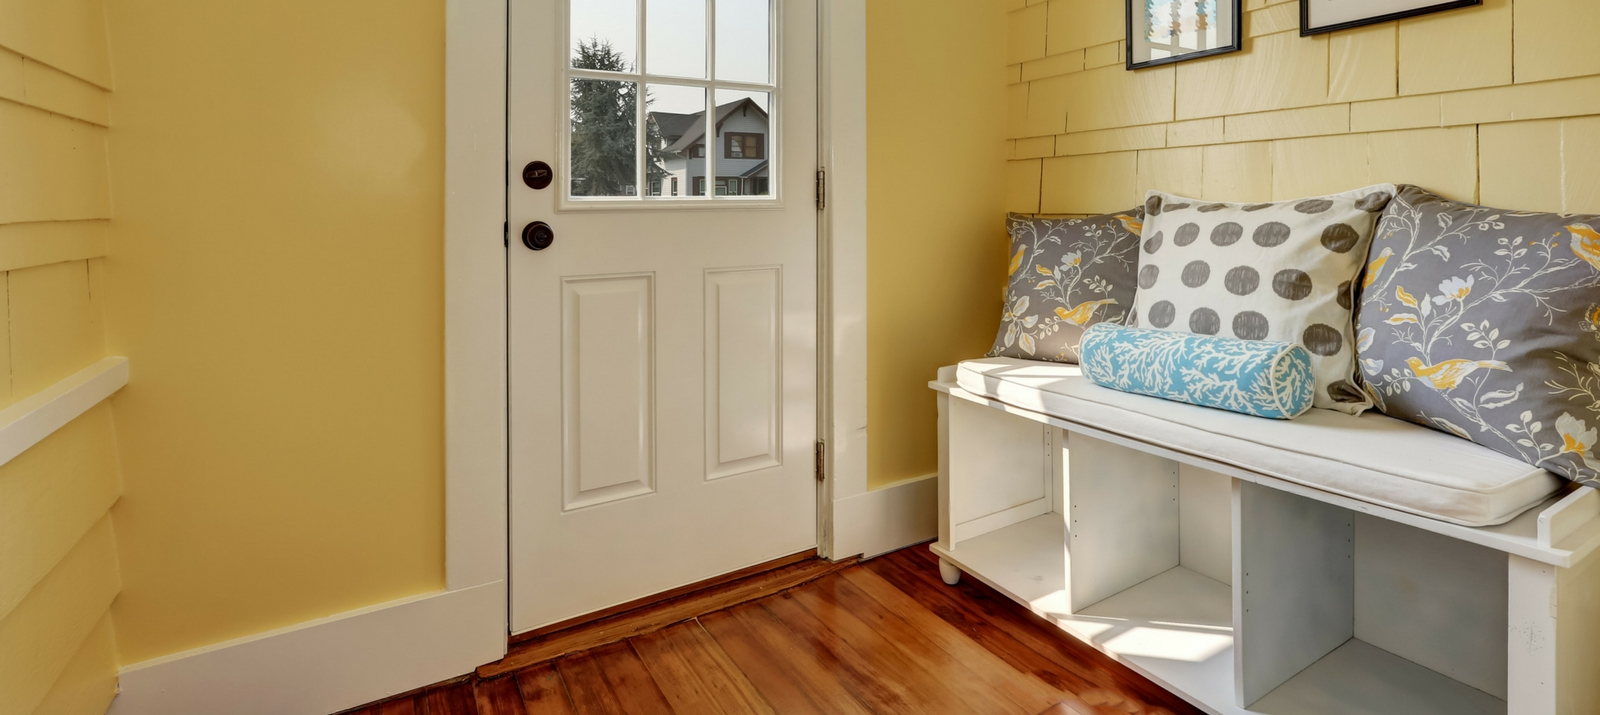 Storage Bench Ideas 15 Amazing Entryway Storage Hacks Ideas You Ll Love